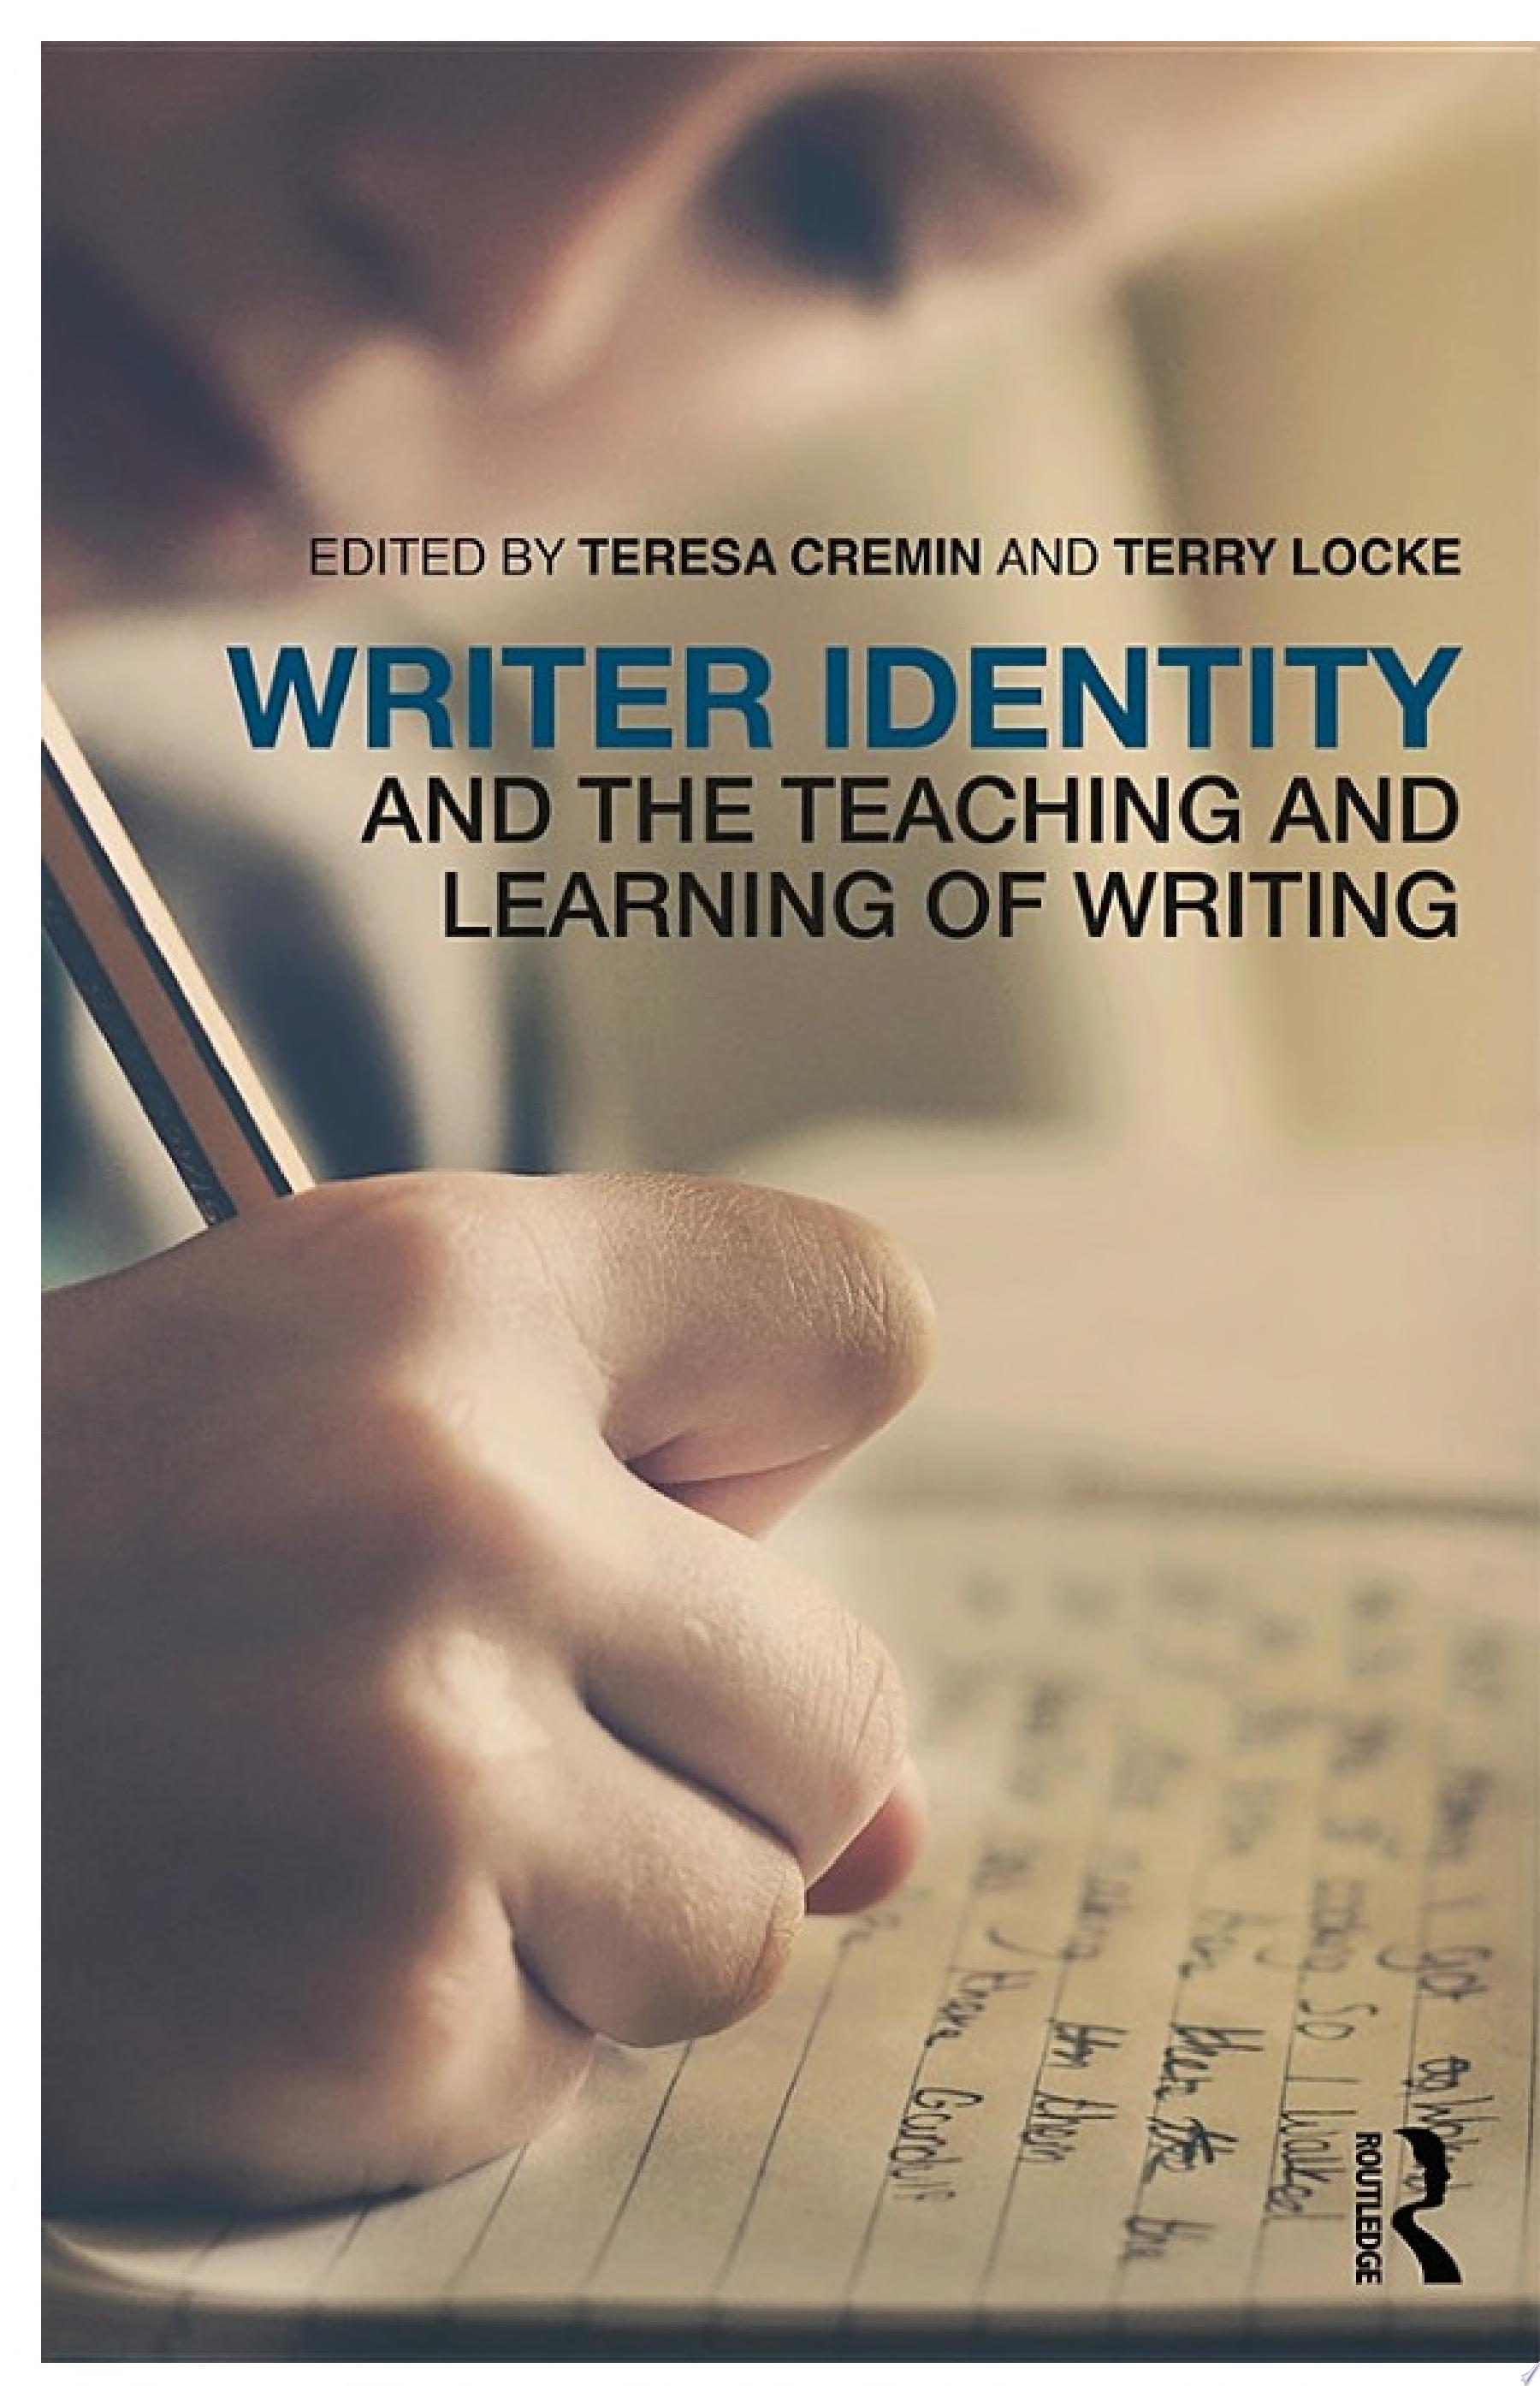 Writer Identity and the Teaching and Learning of Writing